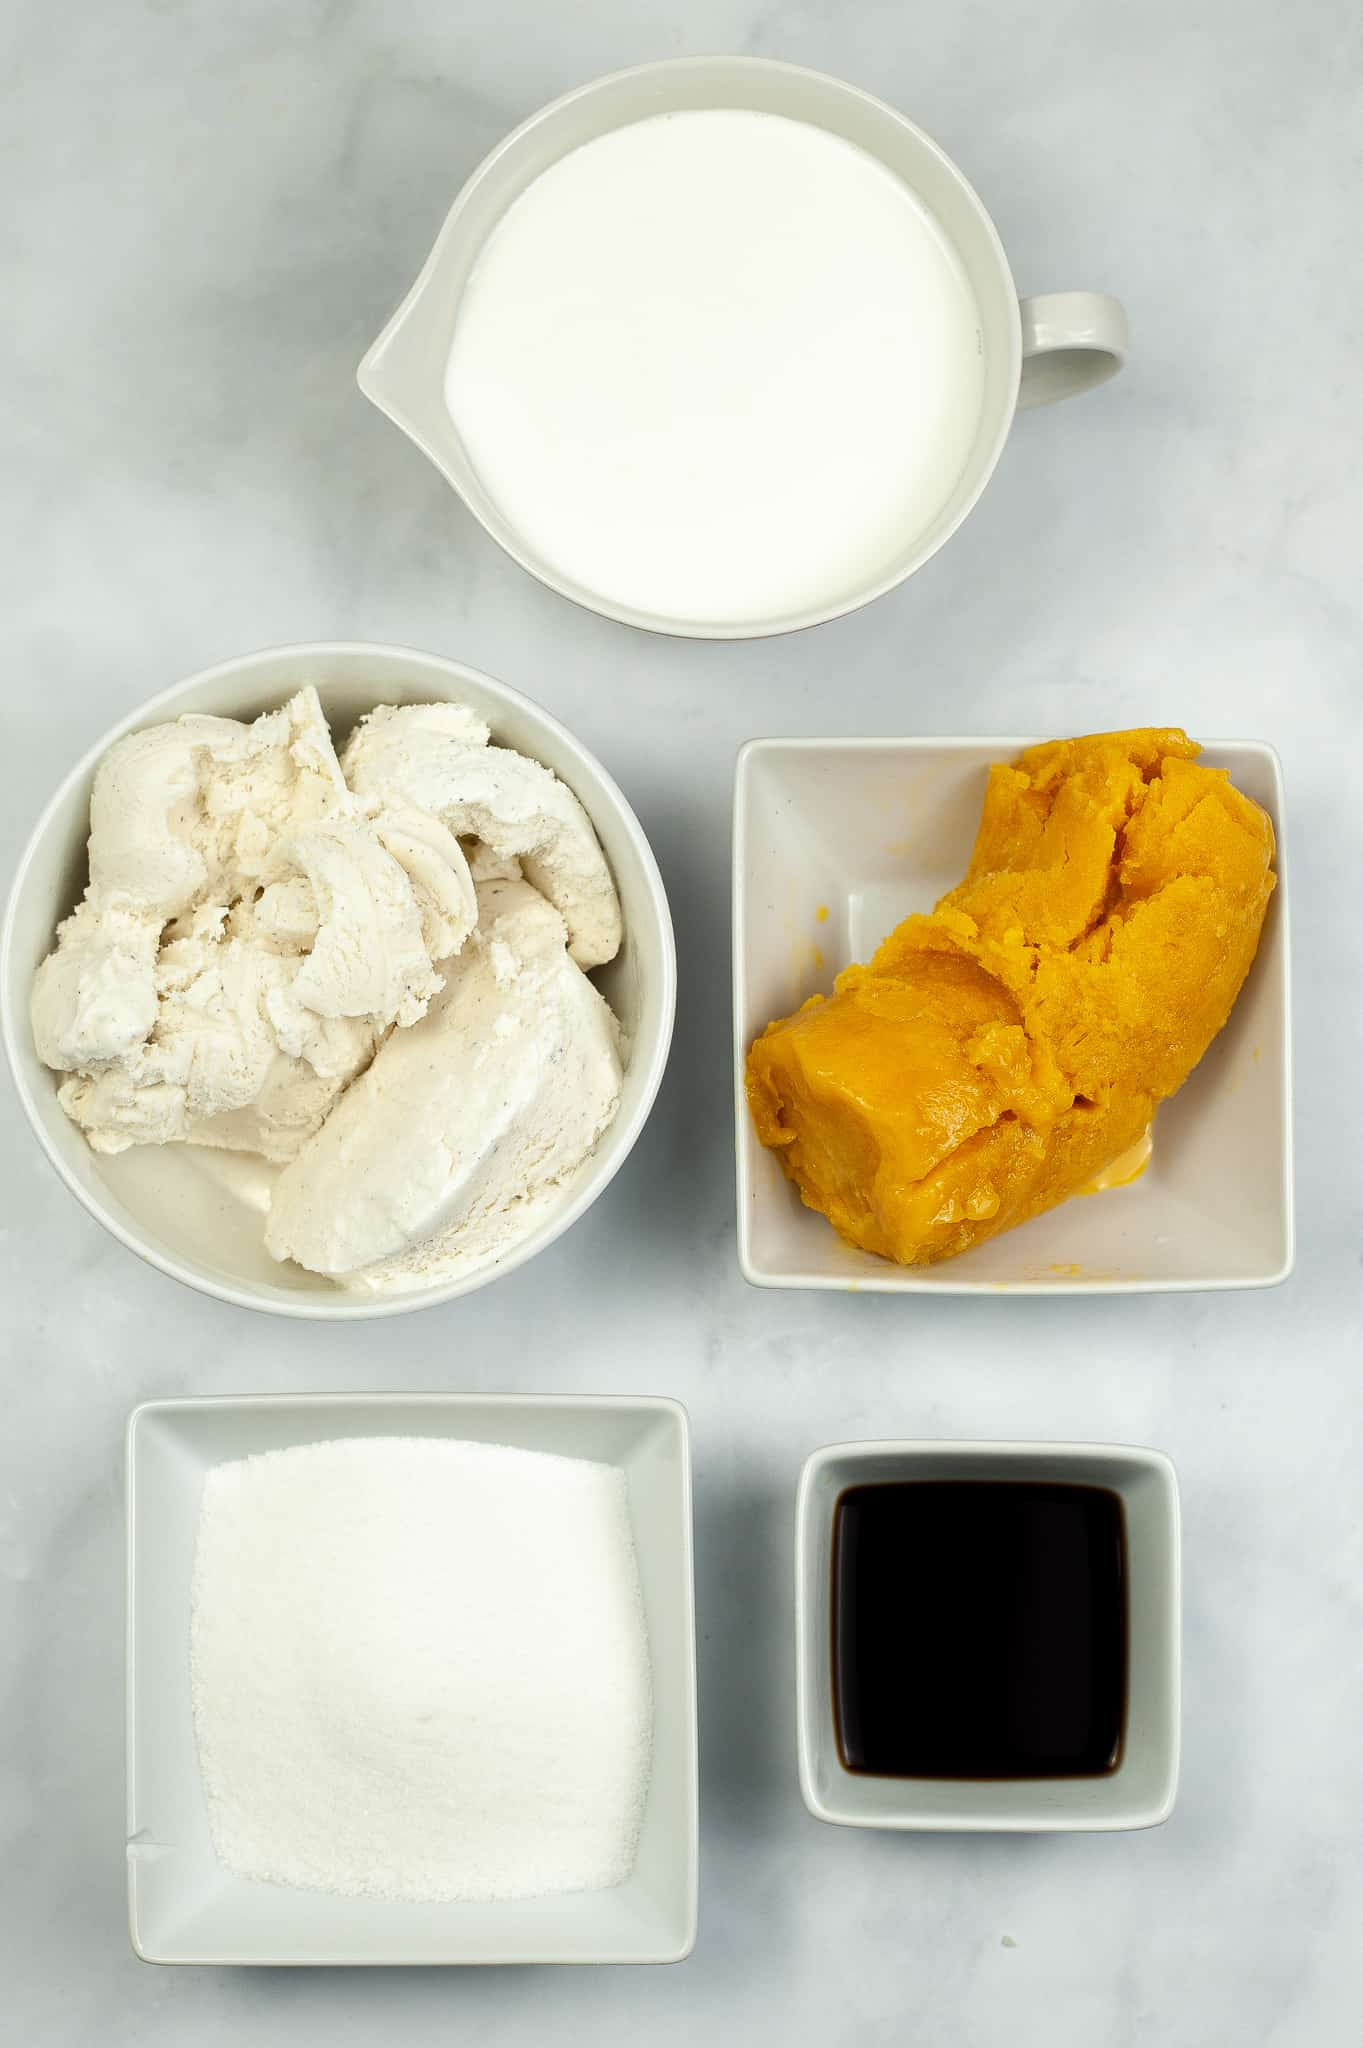 Ingredients in square white dishes for creamsicle milkshake.